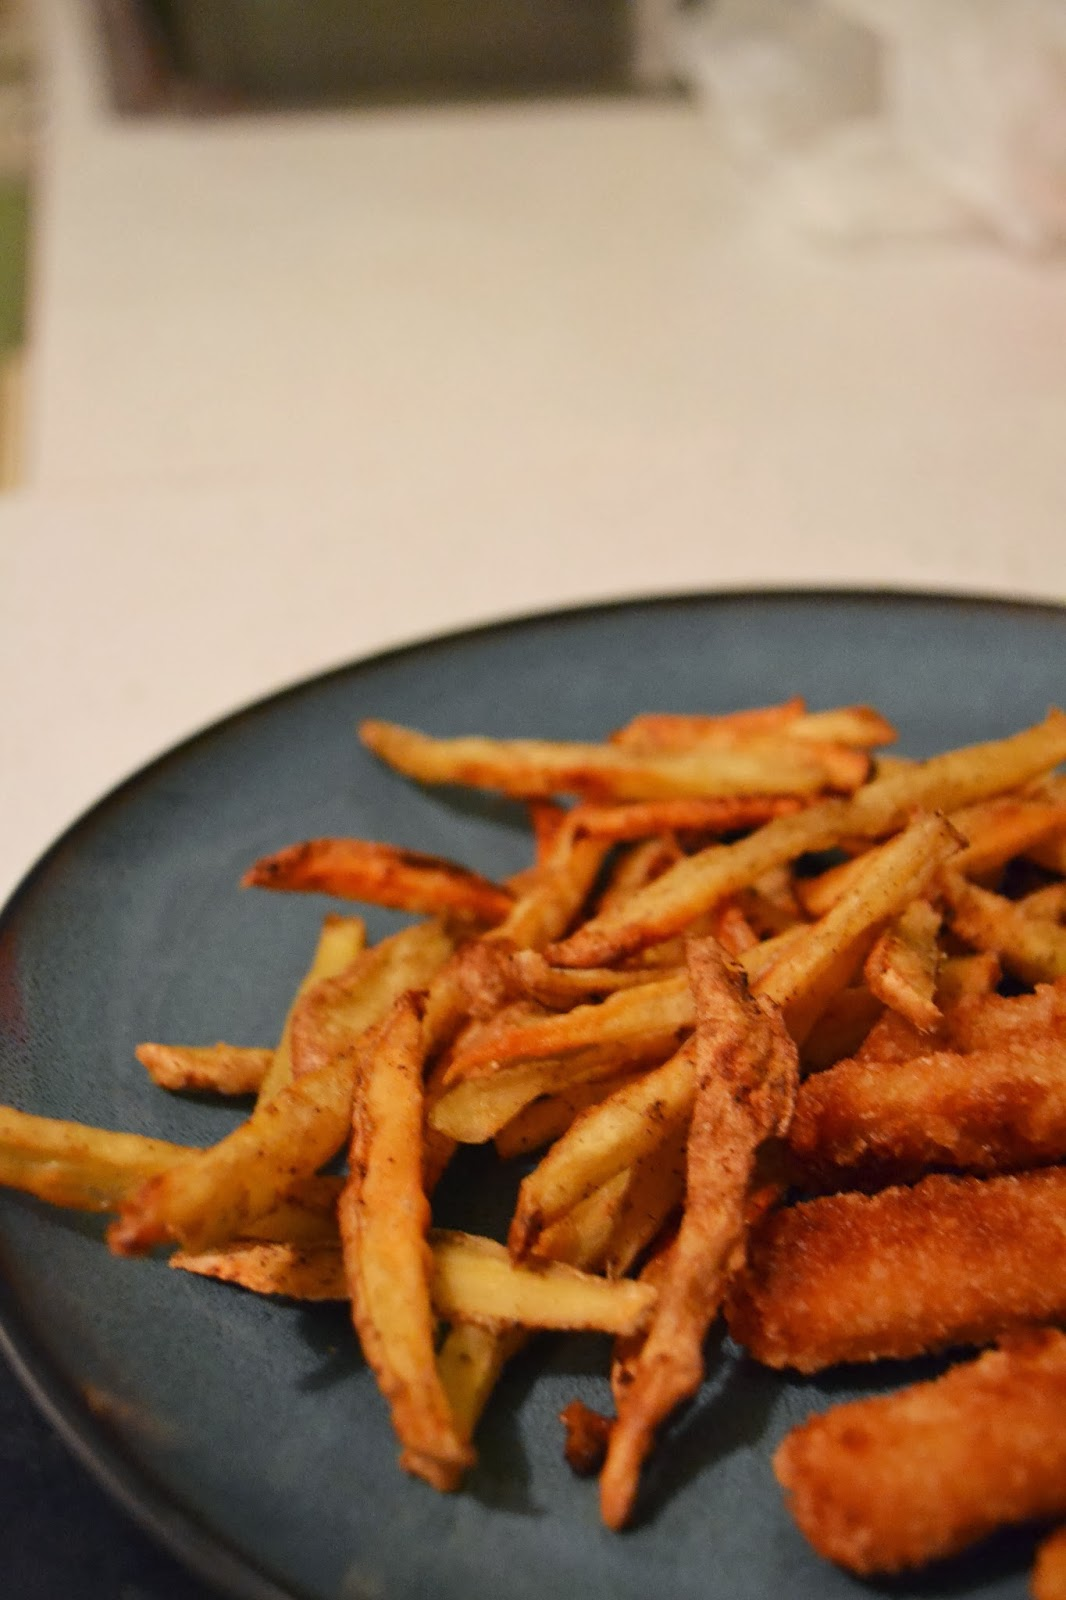 Simple Savory & Satisfying: Homemade Baked French Fries